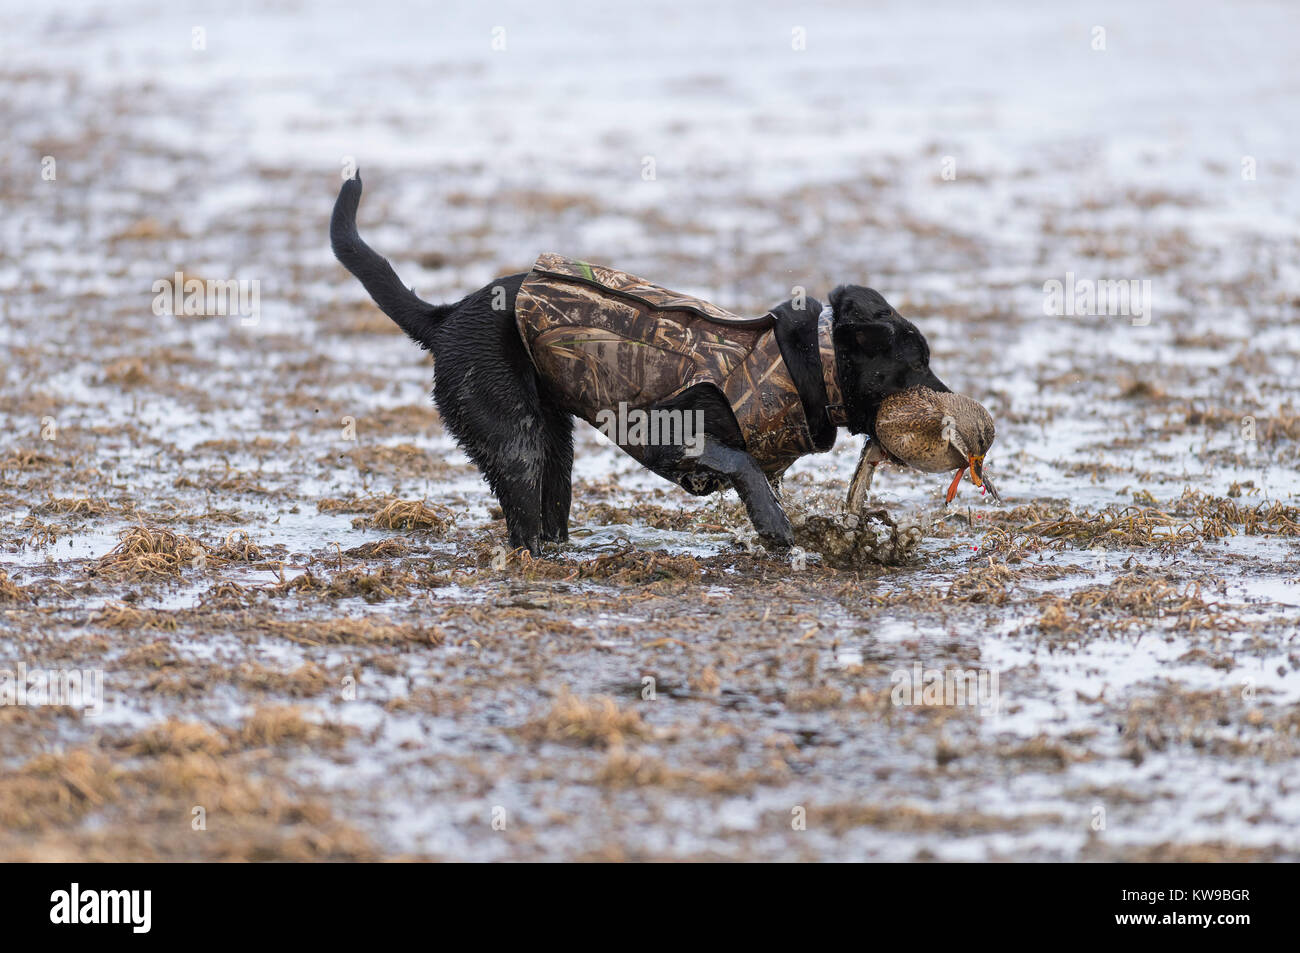 7a1050370c904 ... DOG WEARING REDHEAD CAMO VEST SITTING ON GROUND SNOW AND DUCK HUNTER IN  BACKGROUND. Image ID: BDE5R2 (RM). A Black Labrador Retriever with a  Mallard ...